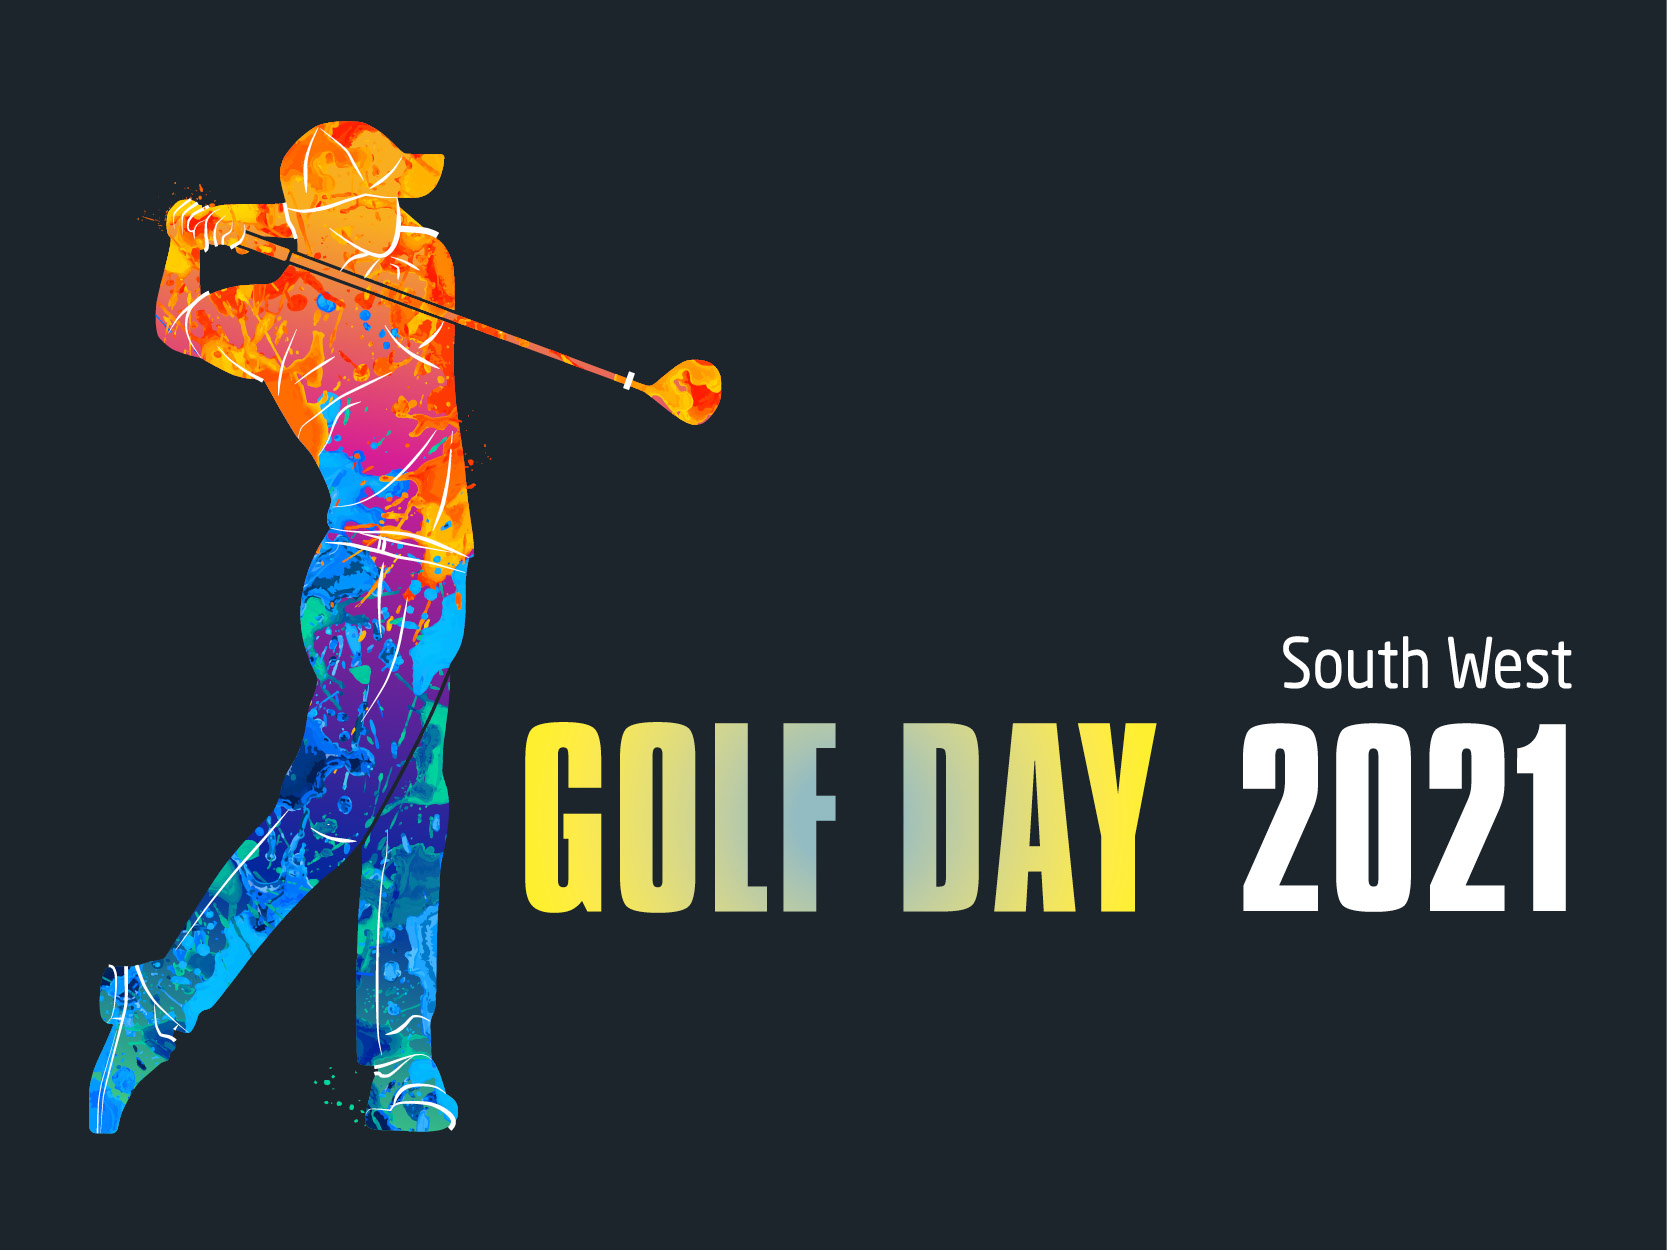 South West Golf Day 2021